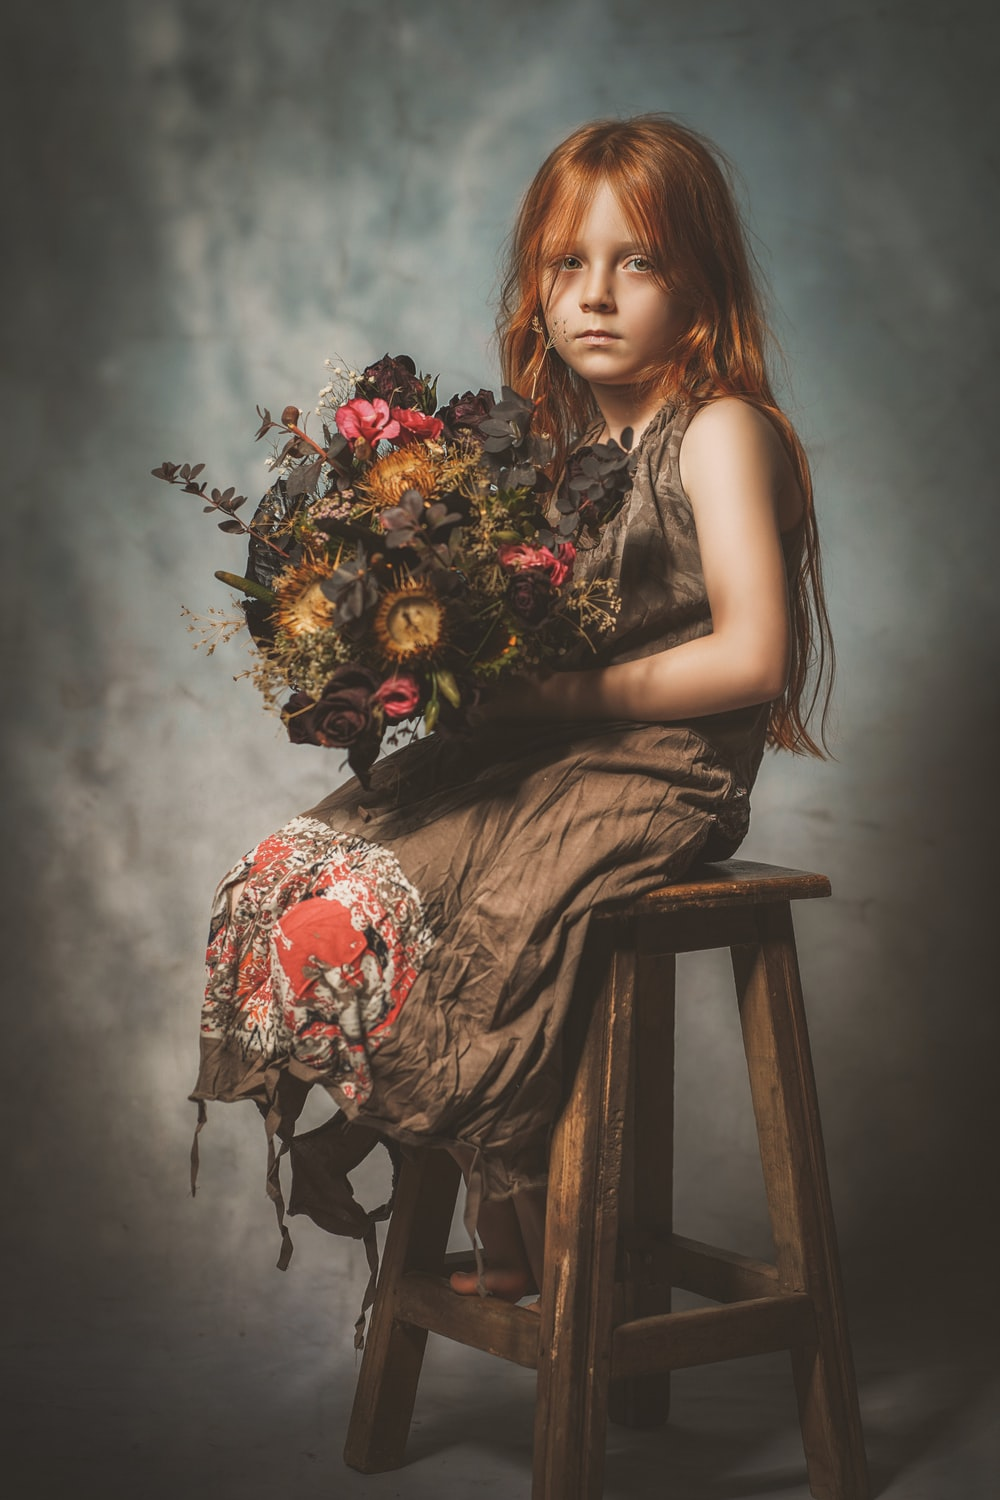 woman in black and red floral sleeveless dress holding bouquet of flowers